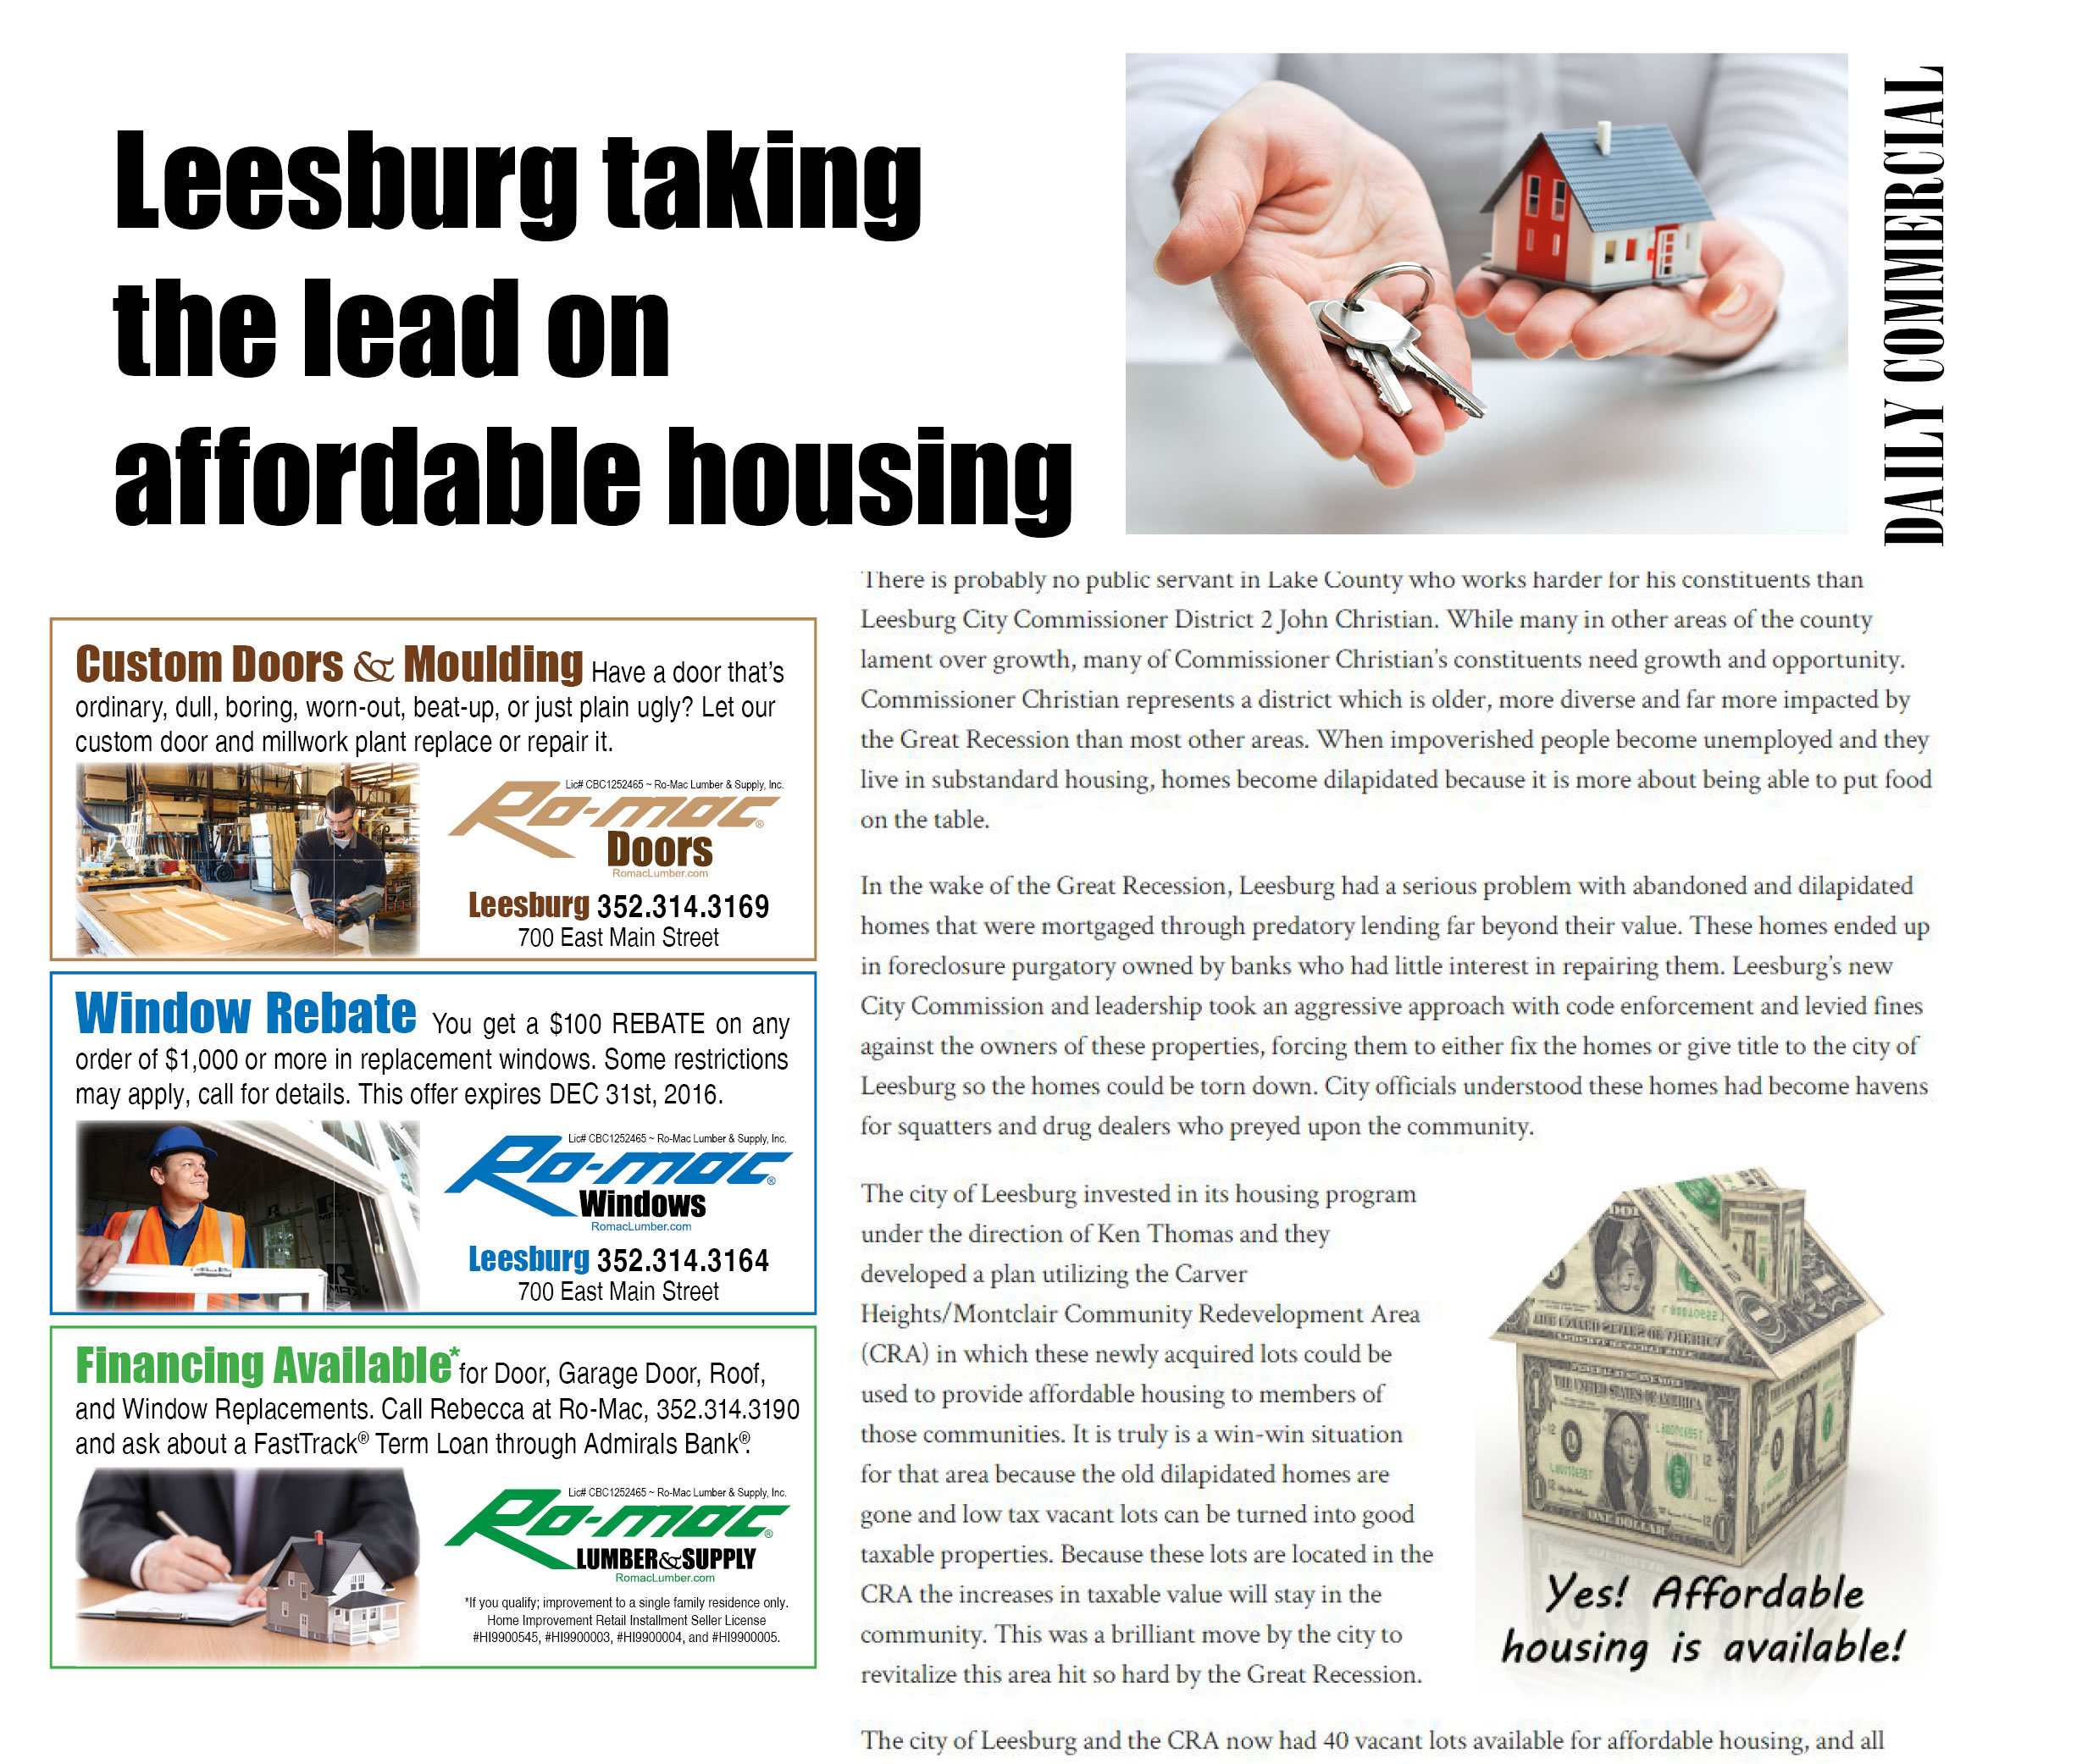 17-04-08 AffordableHousing